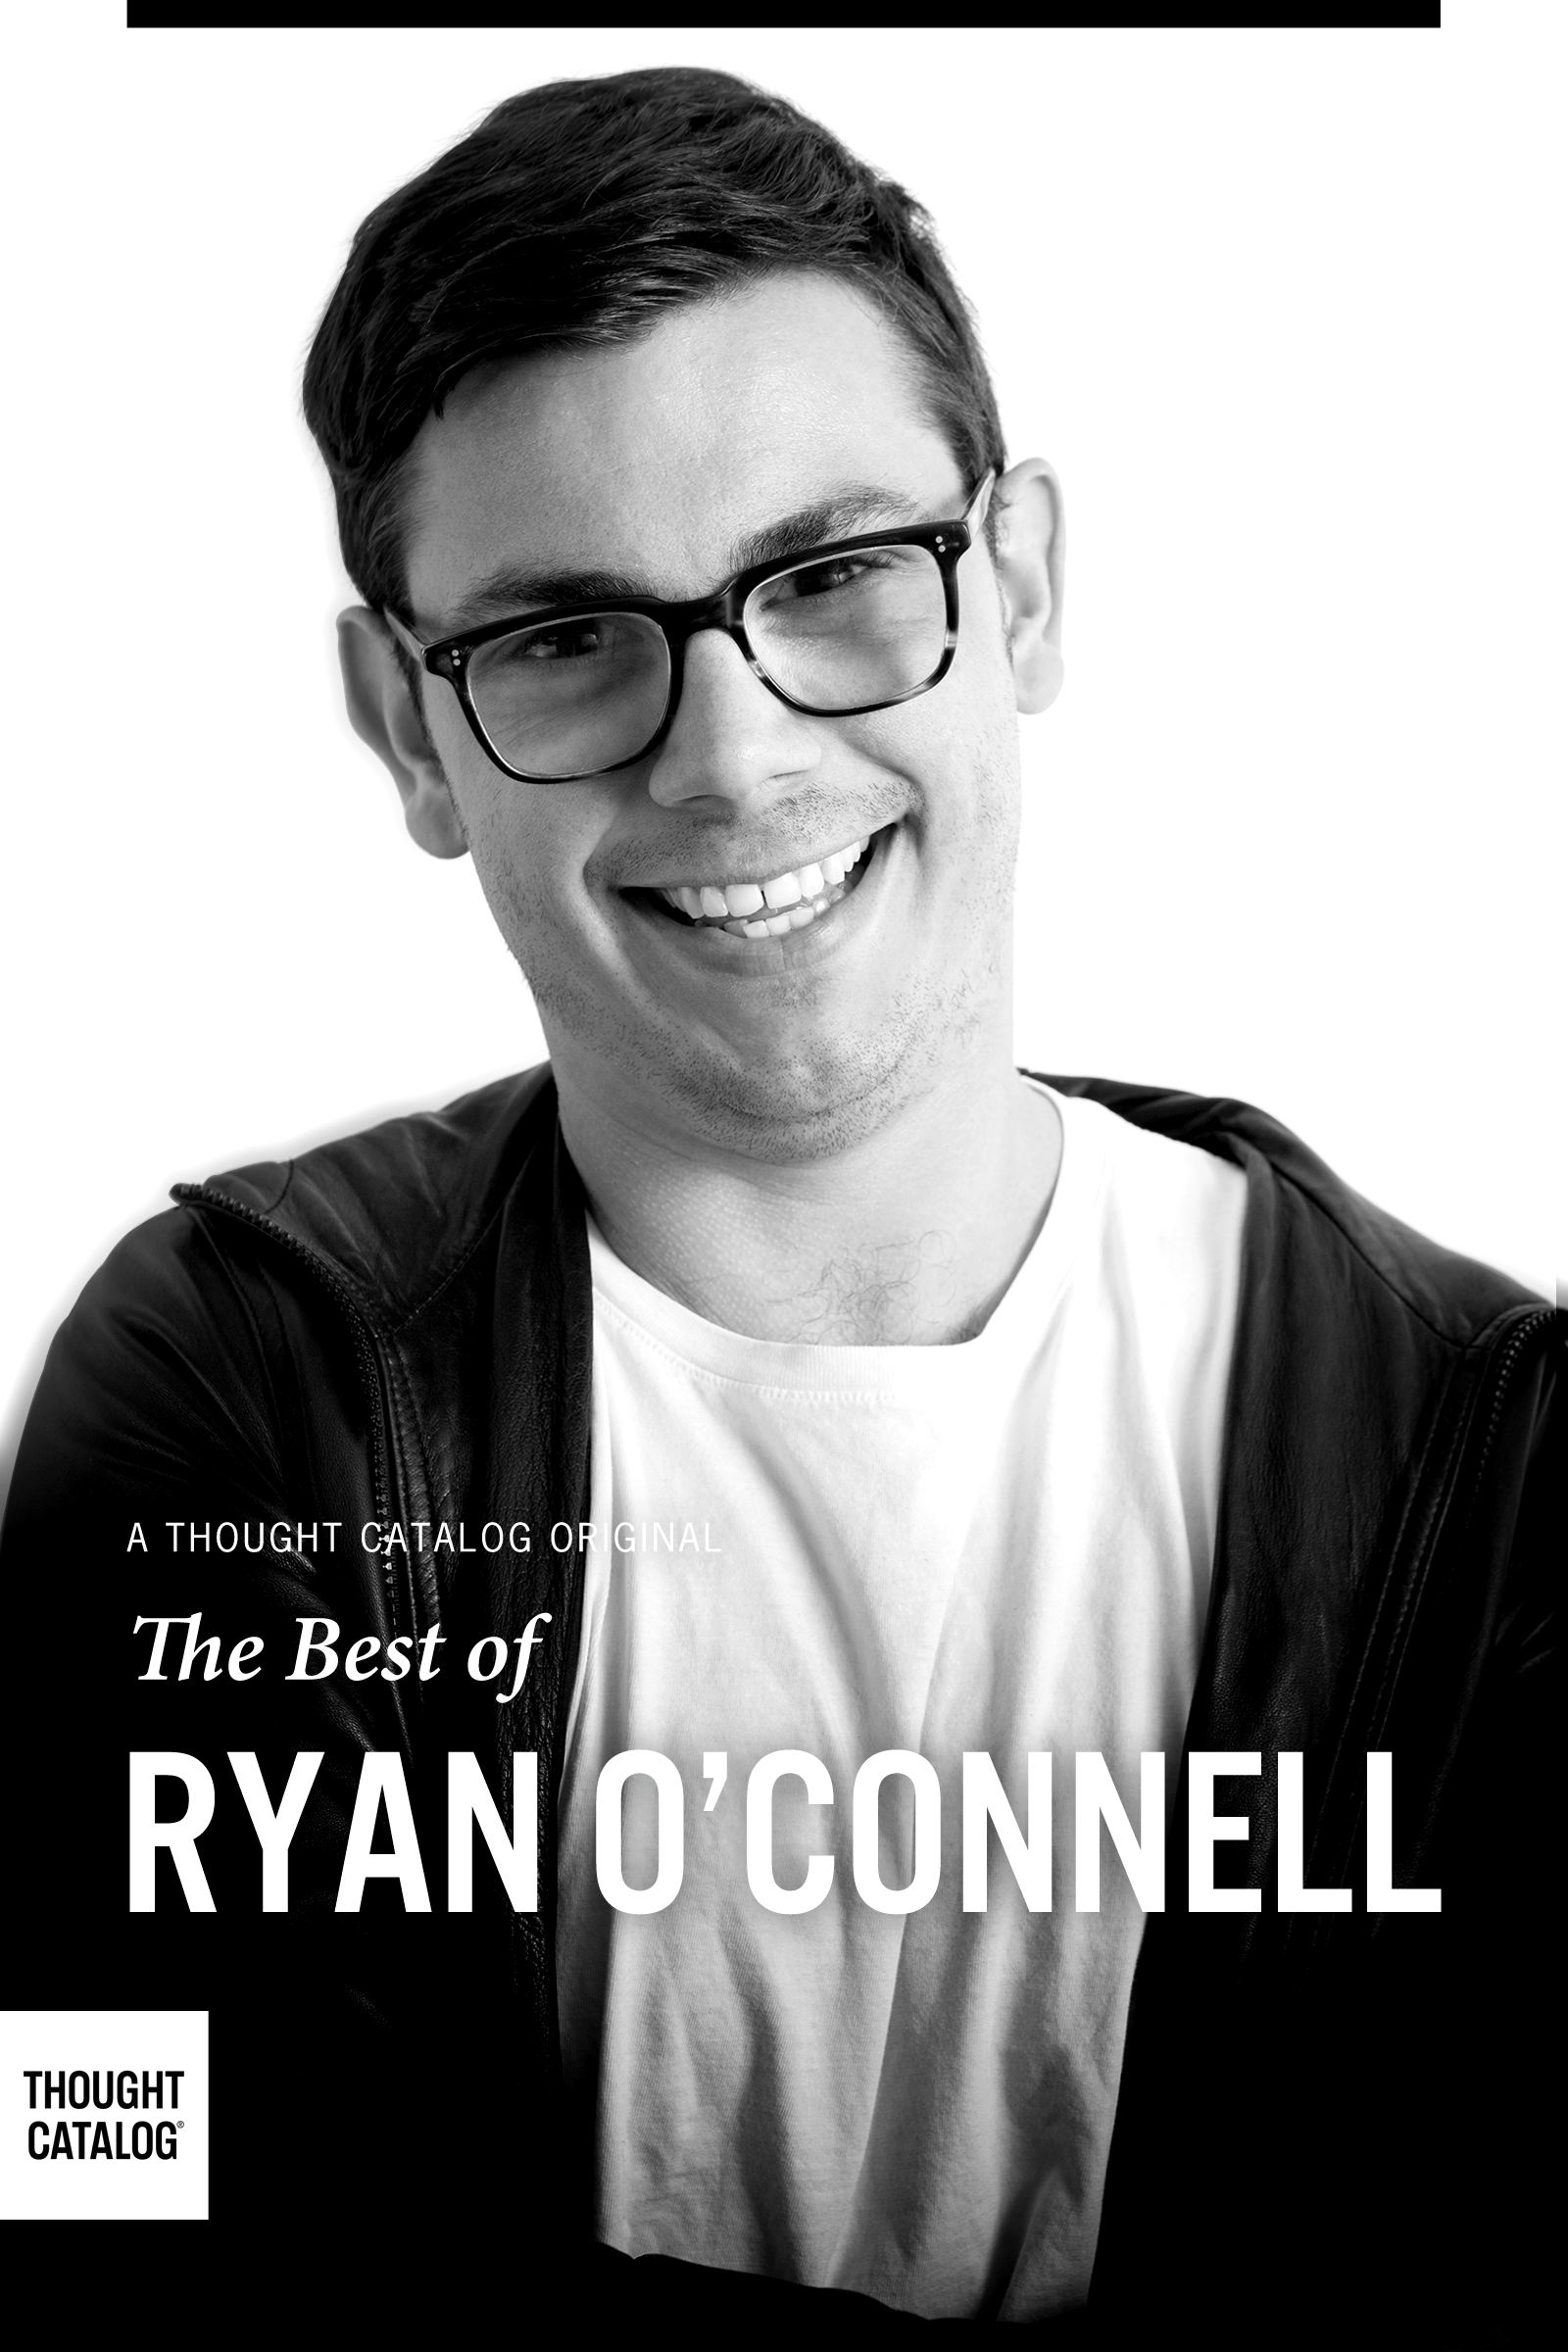 The Best of Ryan O Connell